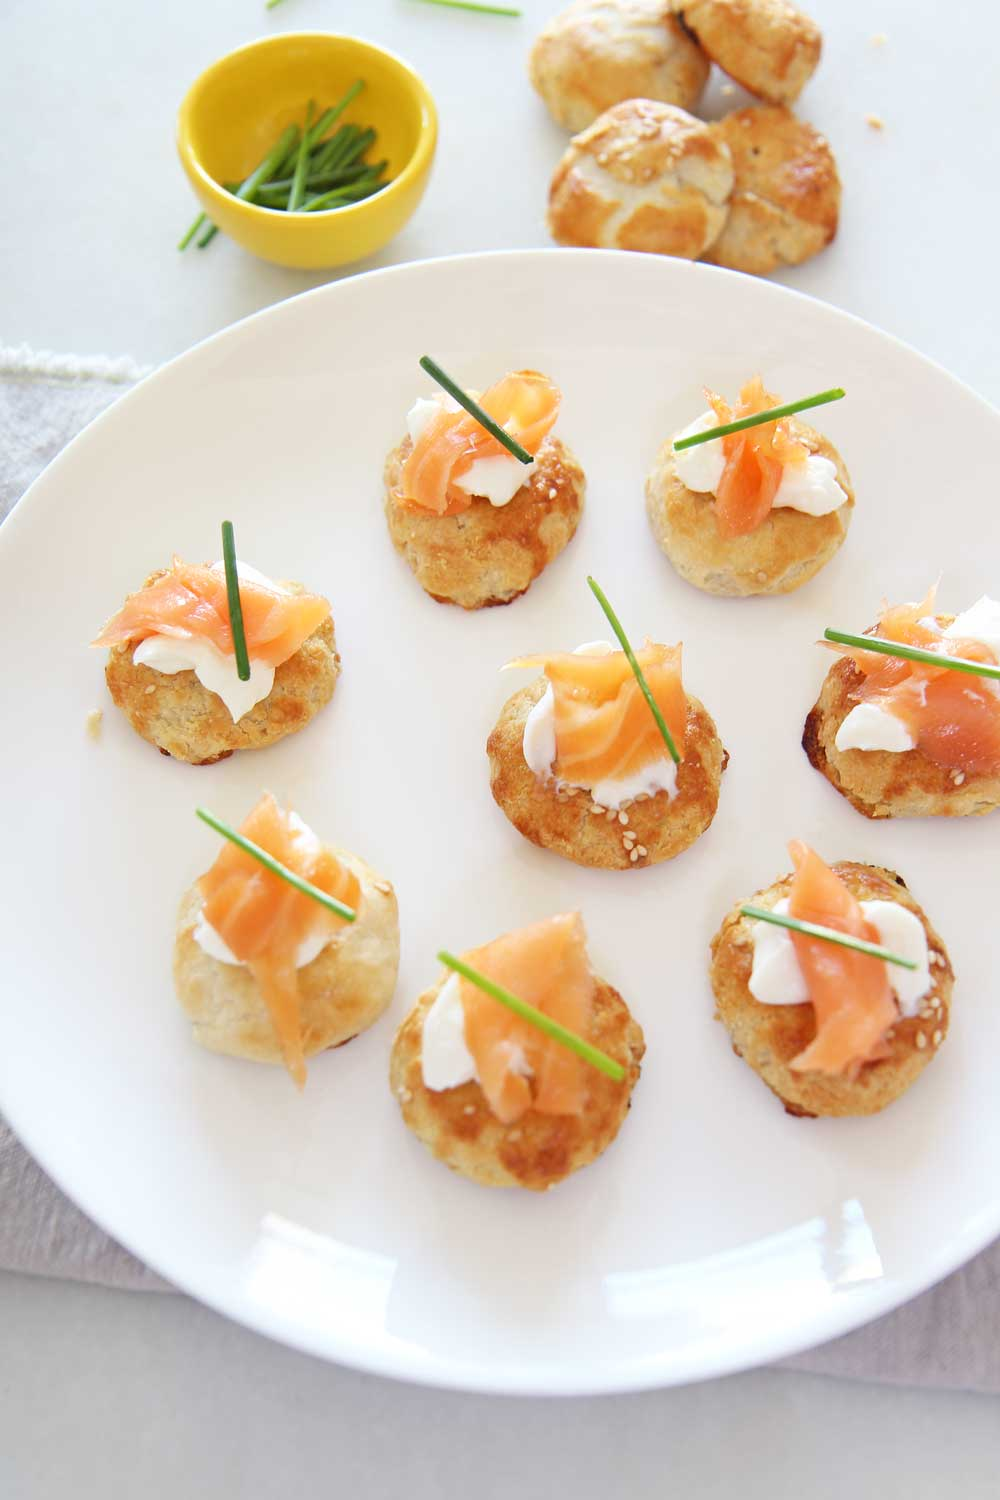 Potato Knish Lox Bites (easiest appetizer with Carnegie Deli Knishes)